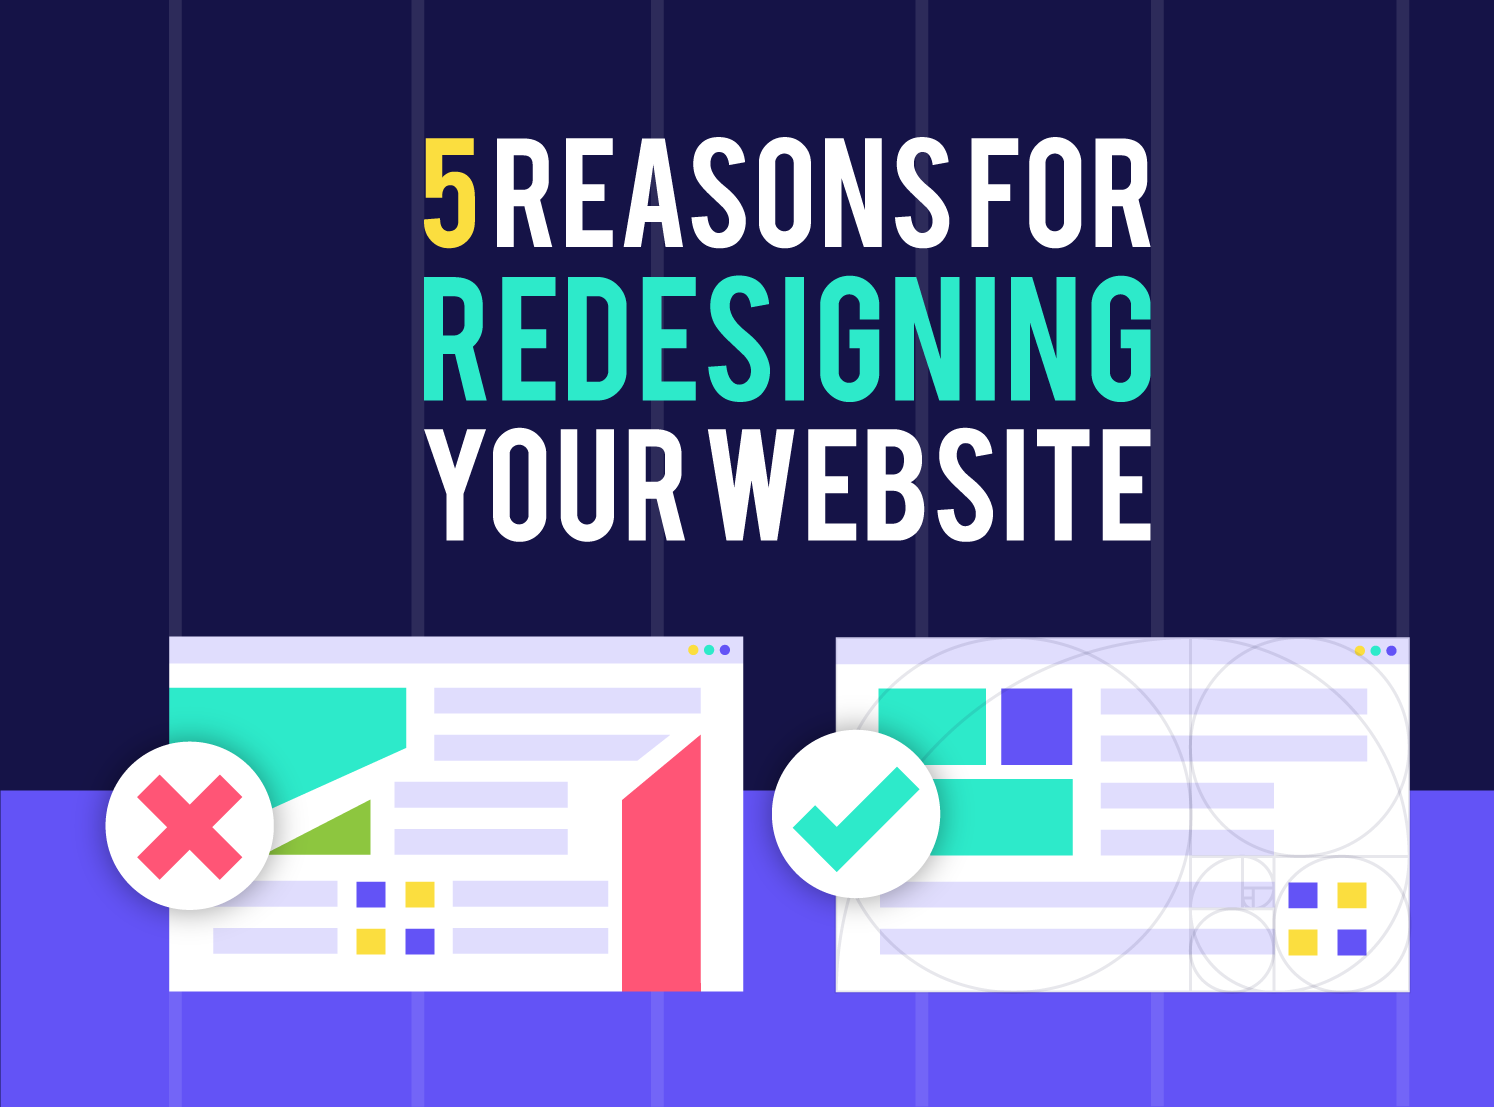 5 Reasons For Redesigning Your Website by Inkyy Web Design & Branding Studio